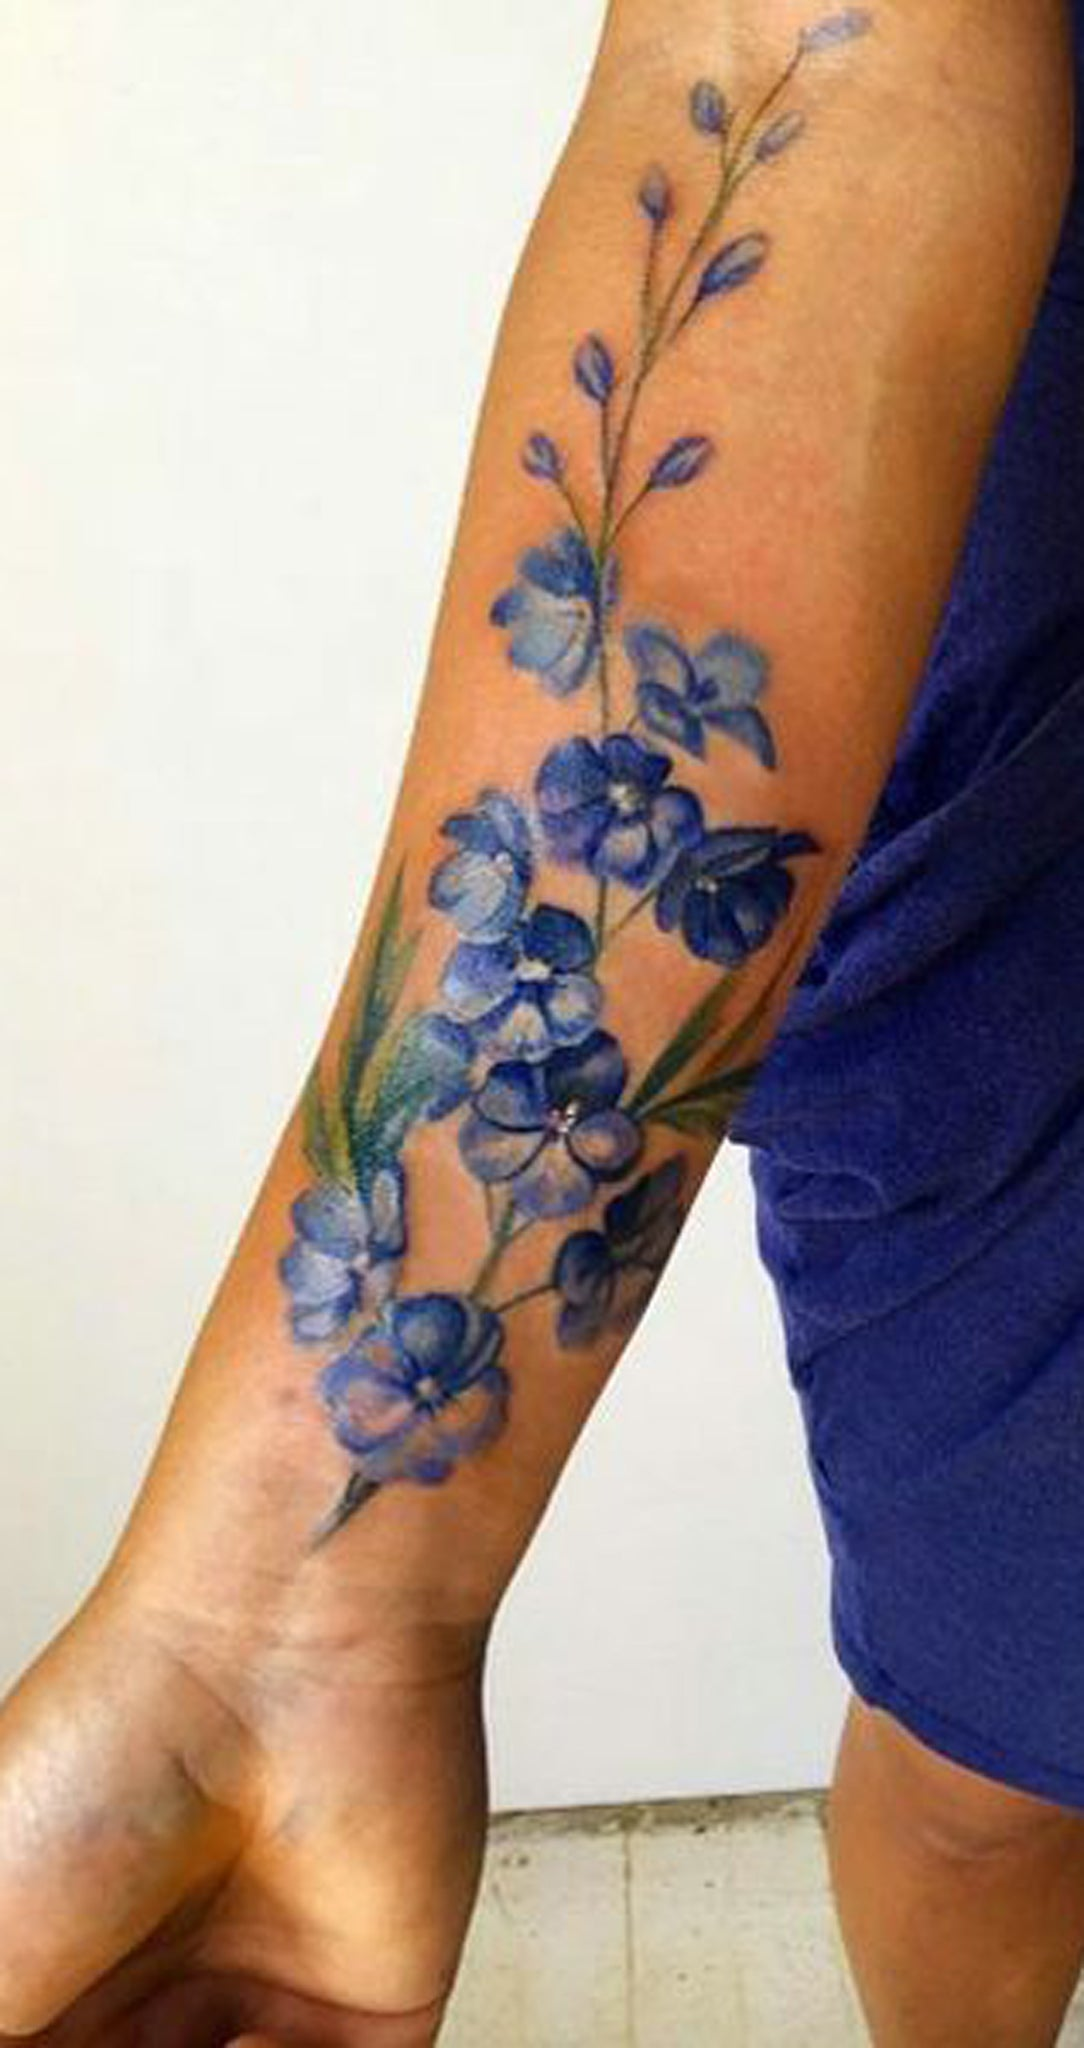 30 unique forearm tattoo ideas for women mybodiart for Forearm flower tattoos